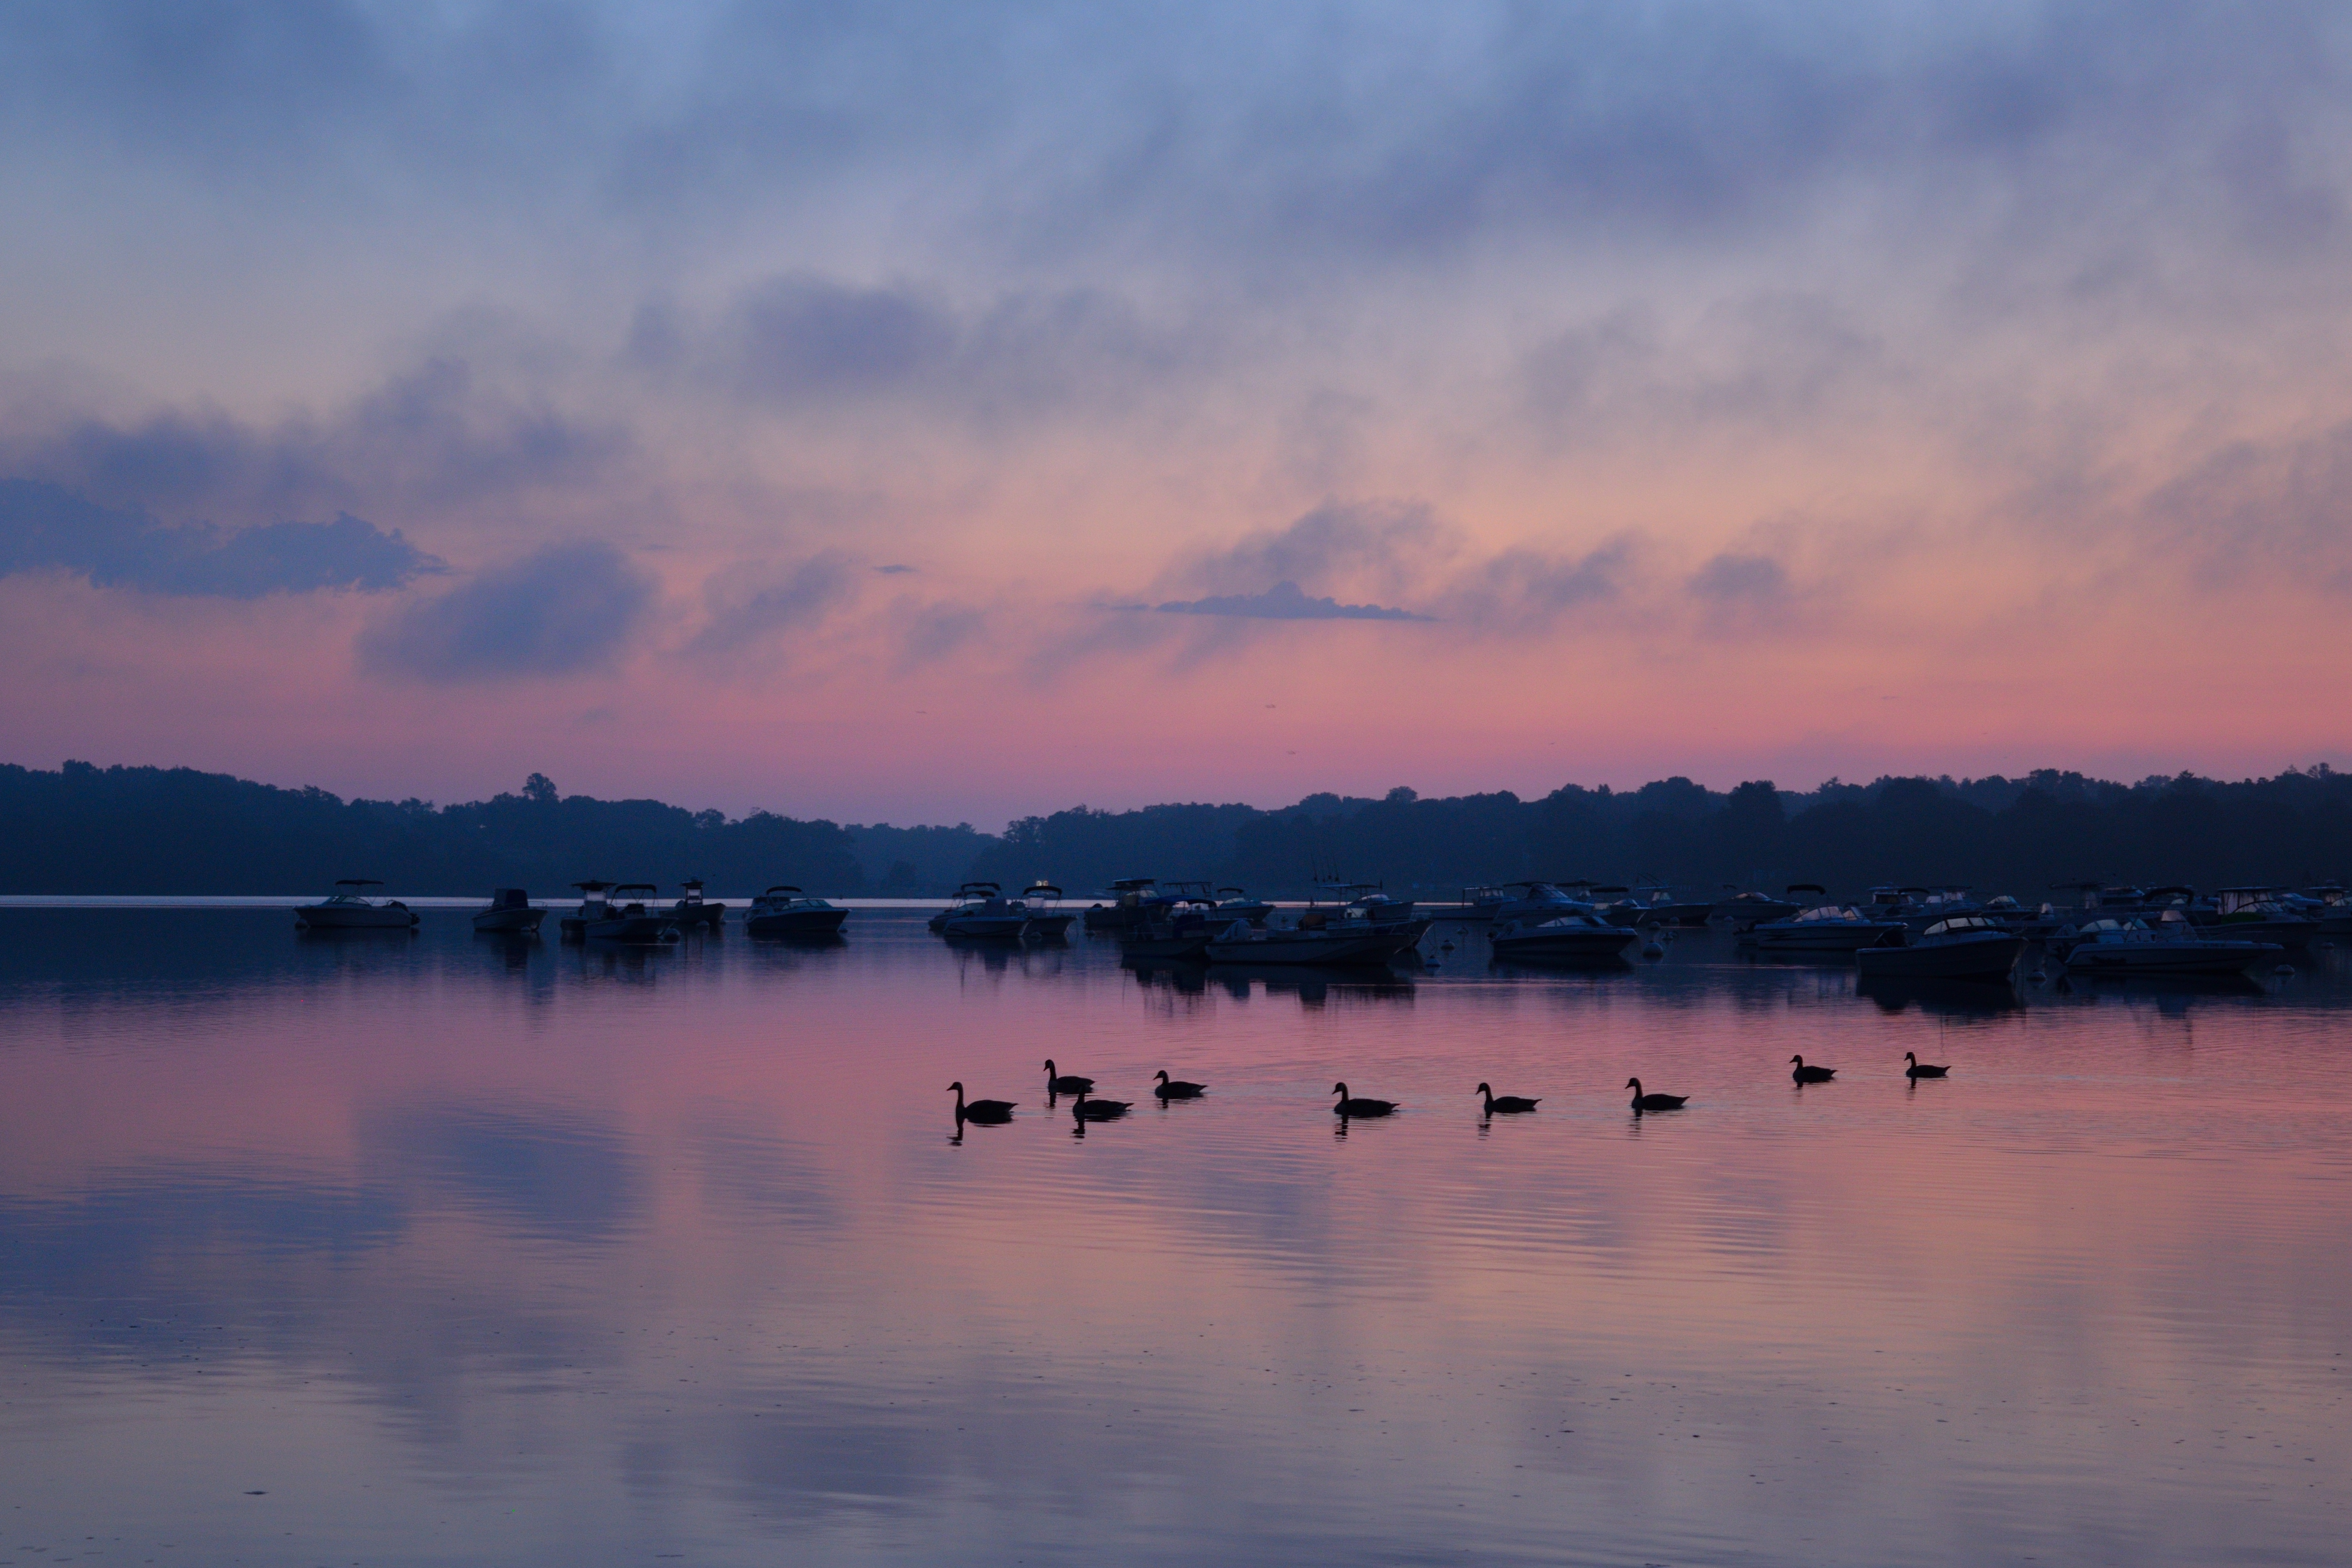 121108 download wallpaper Nature, Swans, Lake, Dusk, Twilight, Trees, Sky, Birds screensavers and pictures for free